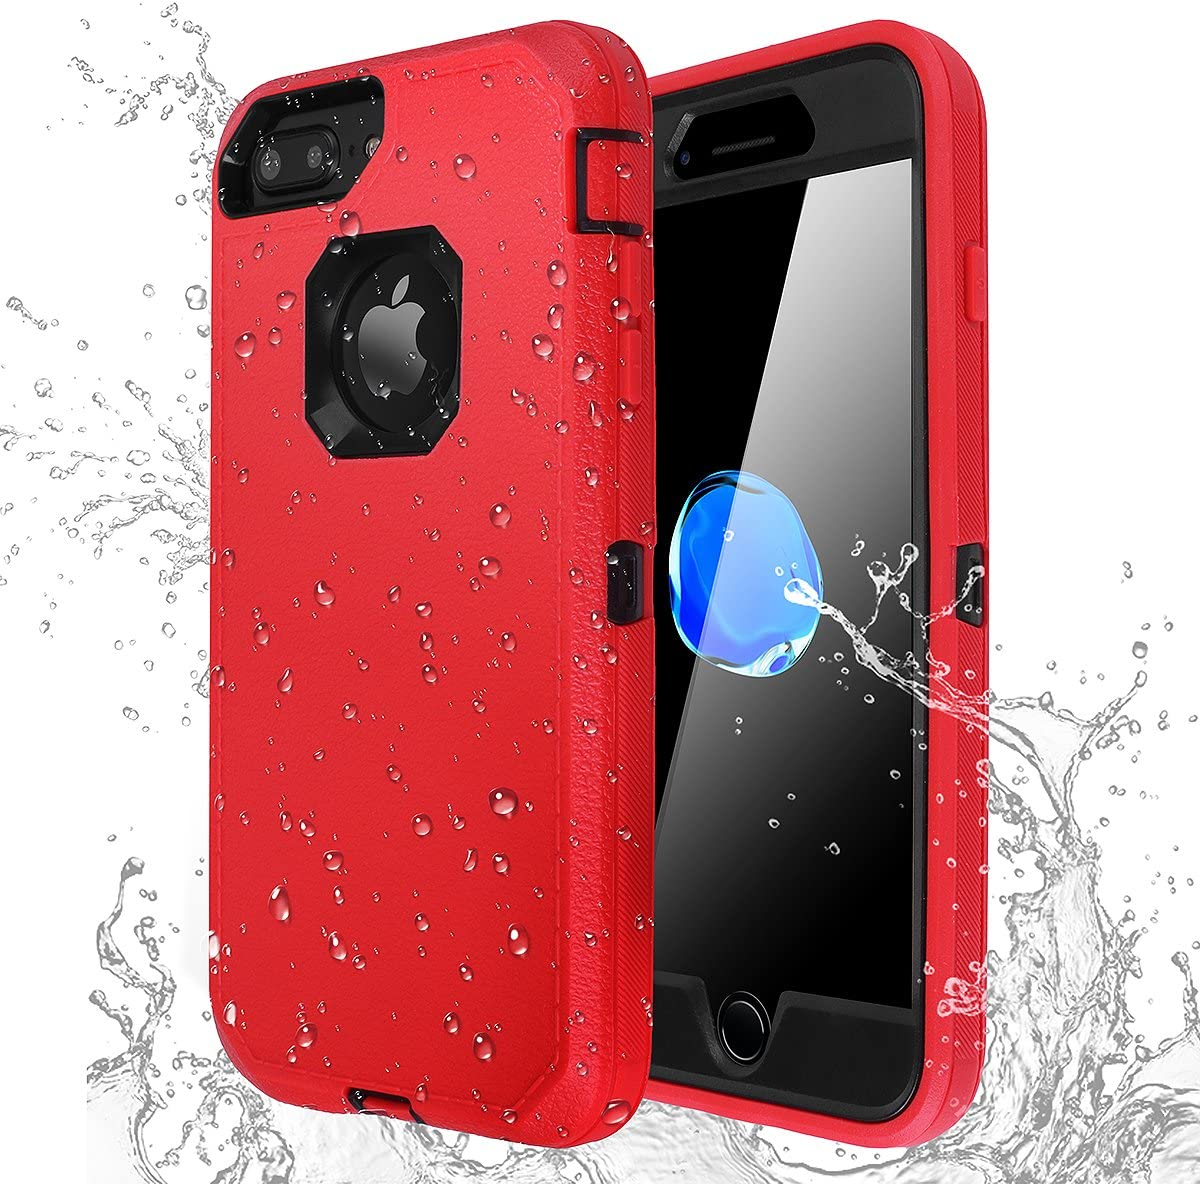 AICase iPhone 7 Plus/8 Plus Shockproof Case, [Heavy Duty] [Full Body] Built-in Screen Protector Water-Resistance Cover for Apple iPhone 8 Plus/7 Plus/6 Plus/6s Plus (Black+Red)